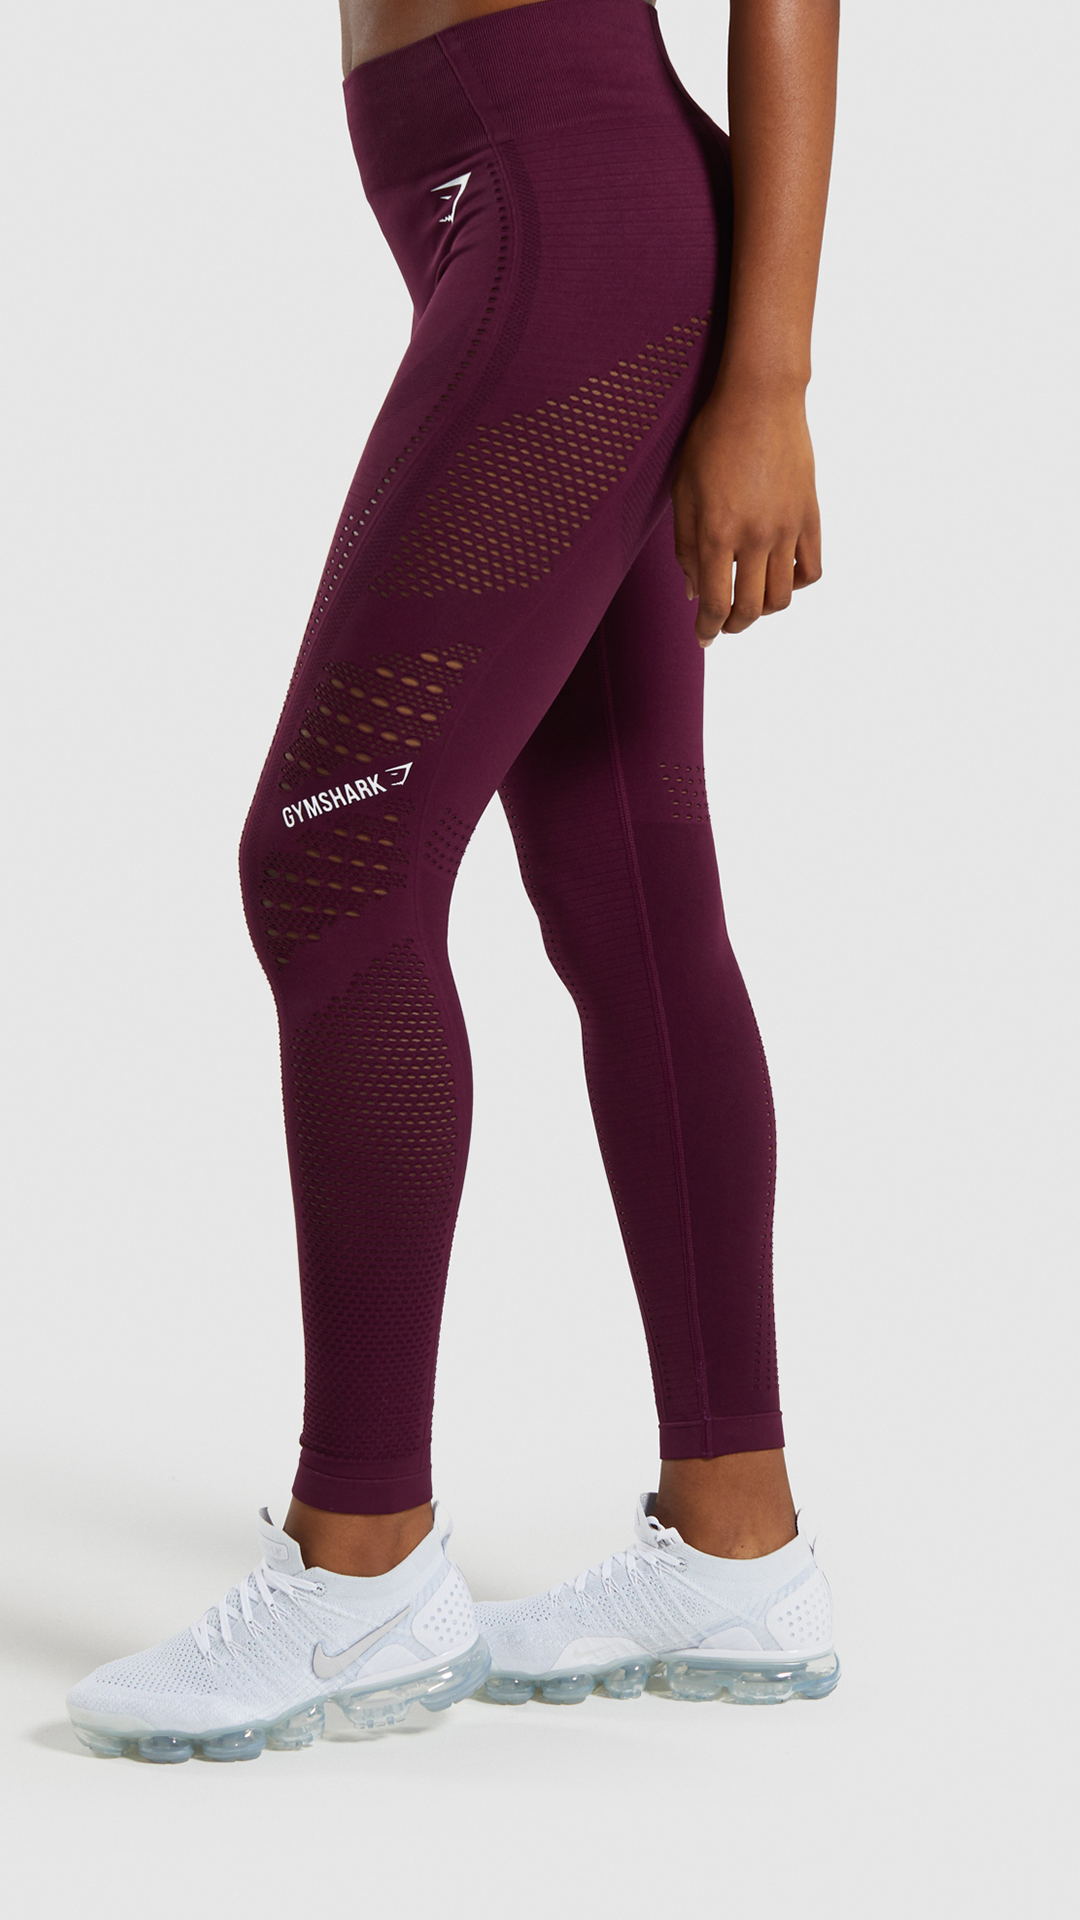 A Spicy New Flawless Set These Flawless Tights In Dark Ruby Are Our New Favourite Gymshark Gym Sweat Train Pe Knit Tights Pants For Women Pants Pattern